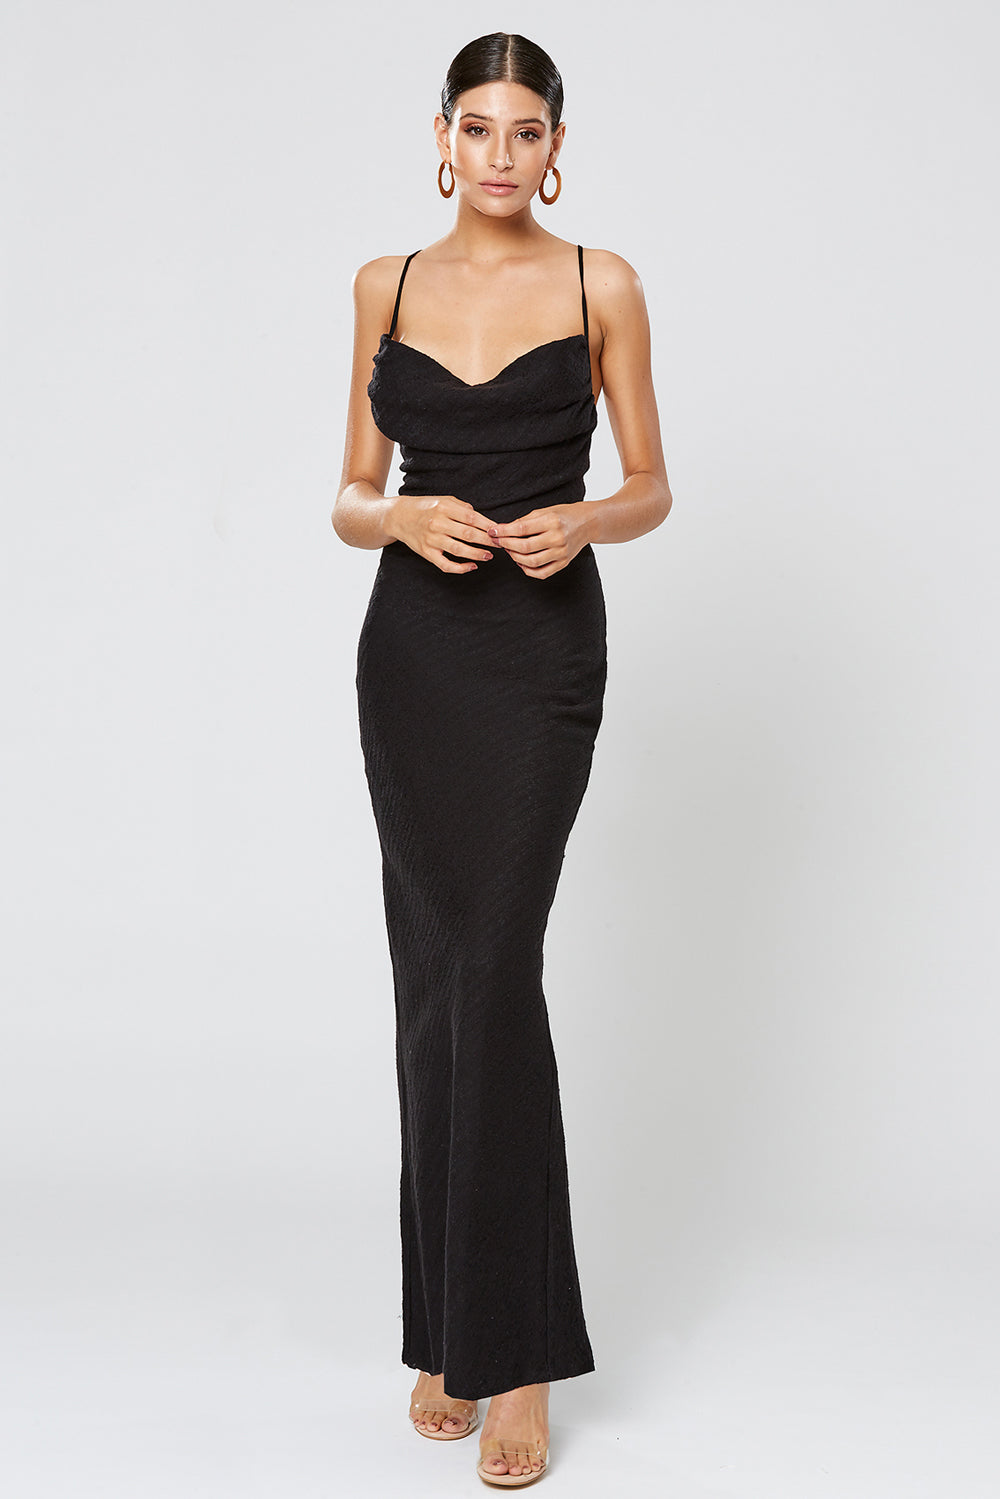 4c60dba3864 FORTUNE COWL NECK MAXI DRESS BLACK – WINONA